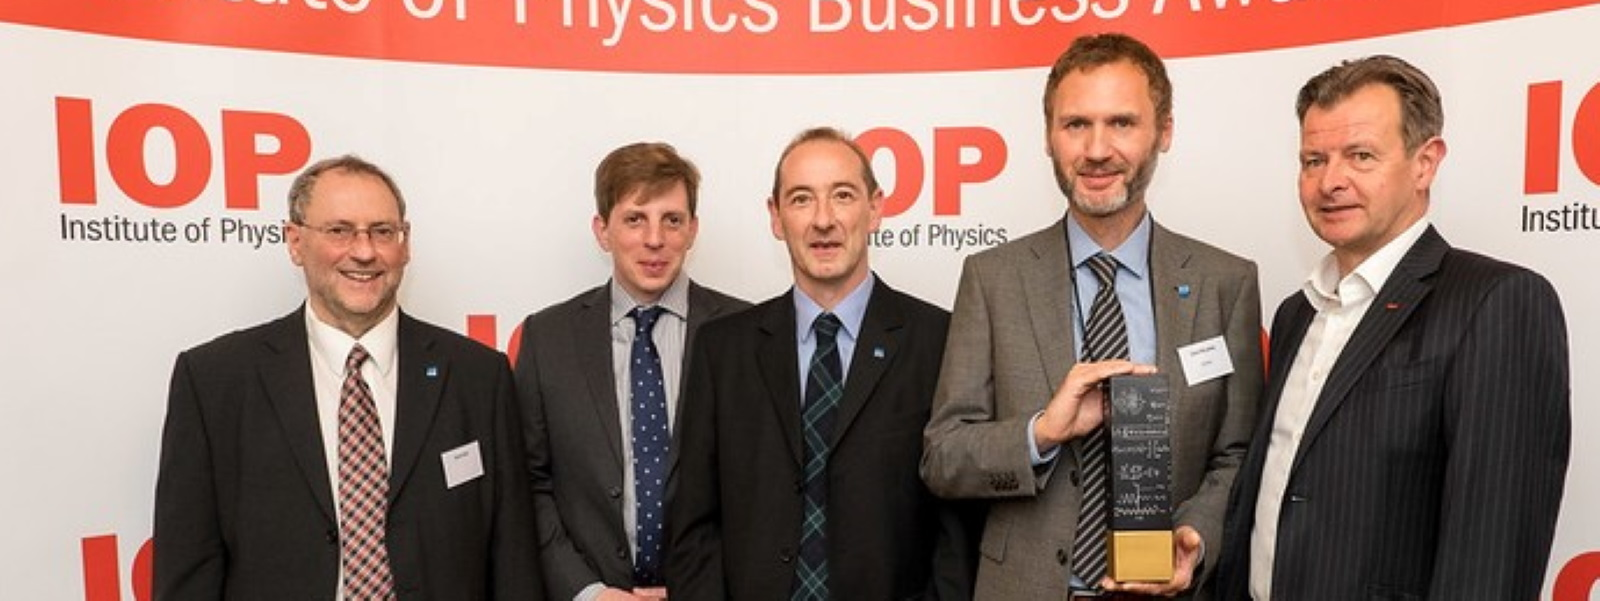 Left to right: Professor David Birch (HORIBA and University of Strathclyde); Richard Hirsch (HORIBA); Dr Graham Hungerford (HORIBA), Dr David McLoskey (HORIBA) and Dr James McKenzie (Vice-President Business, Institute of Physics). Photo by Institute of Physics.